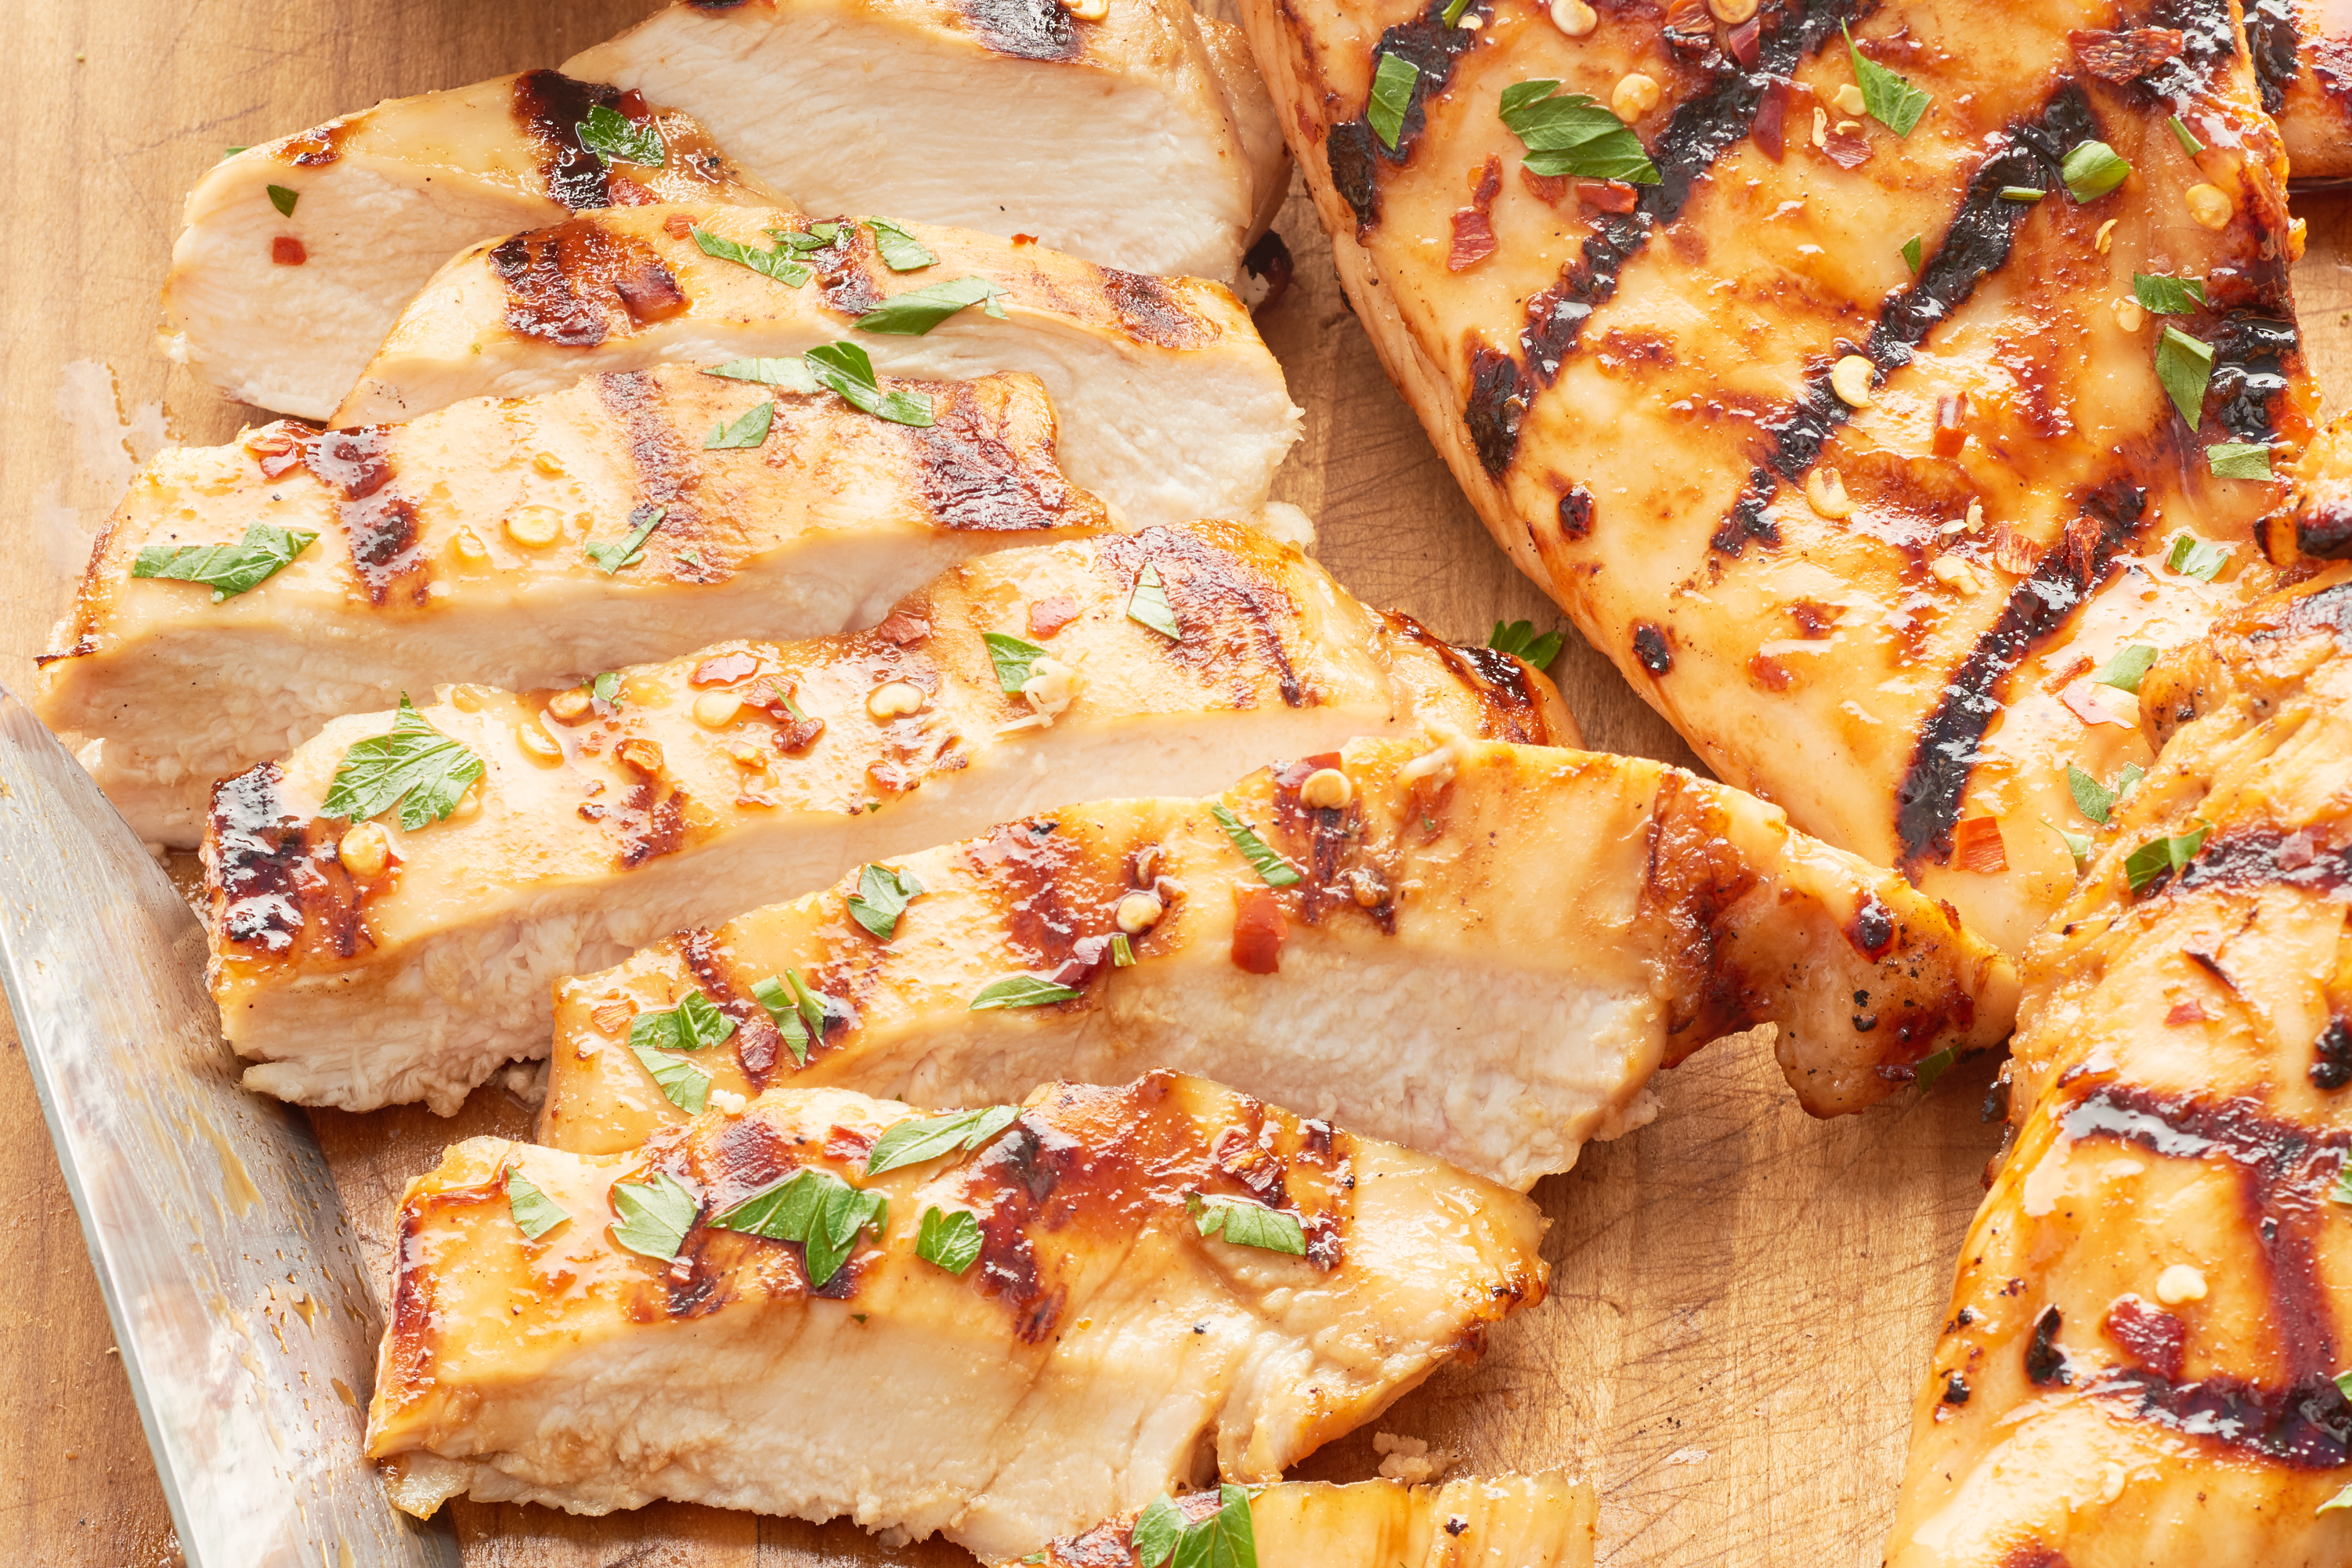 How To Make Juicy Flavorful Grilled Chicken Breast